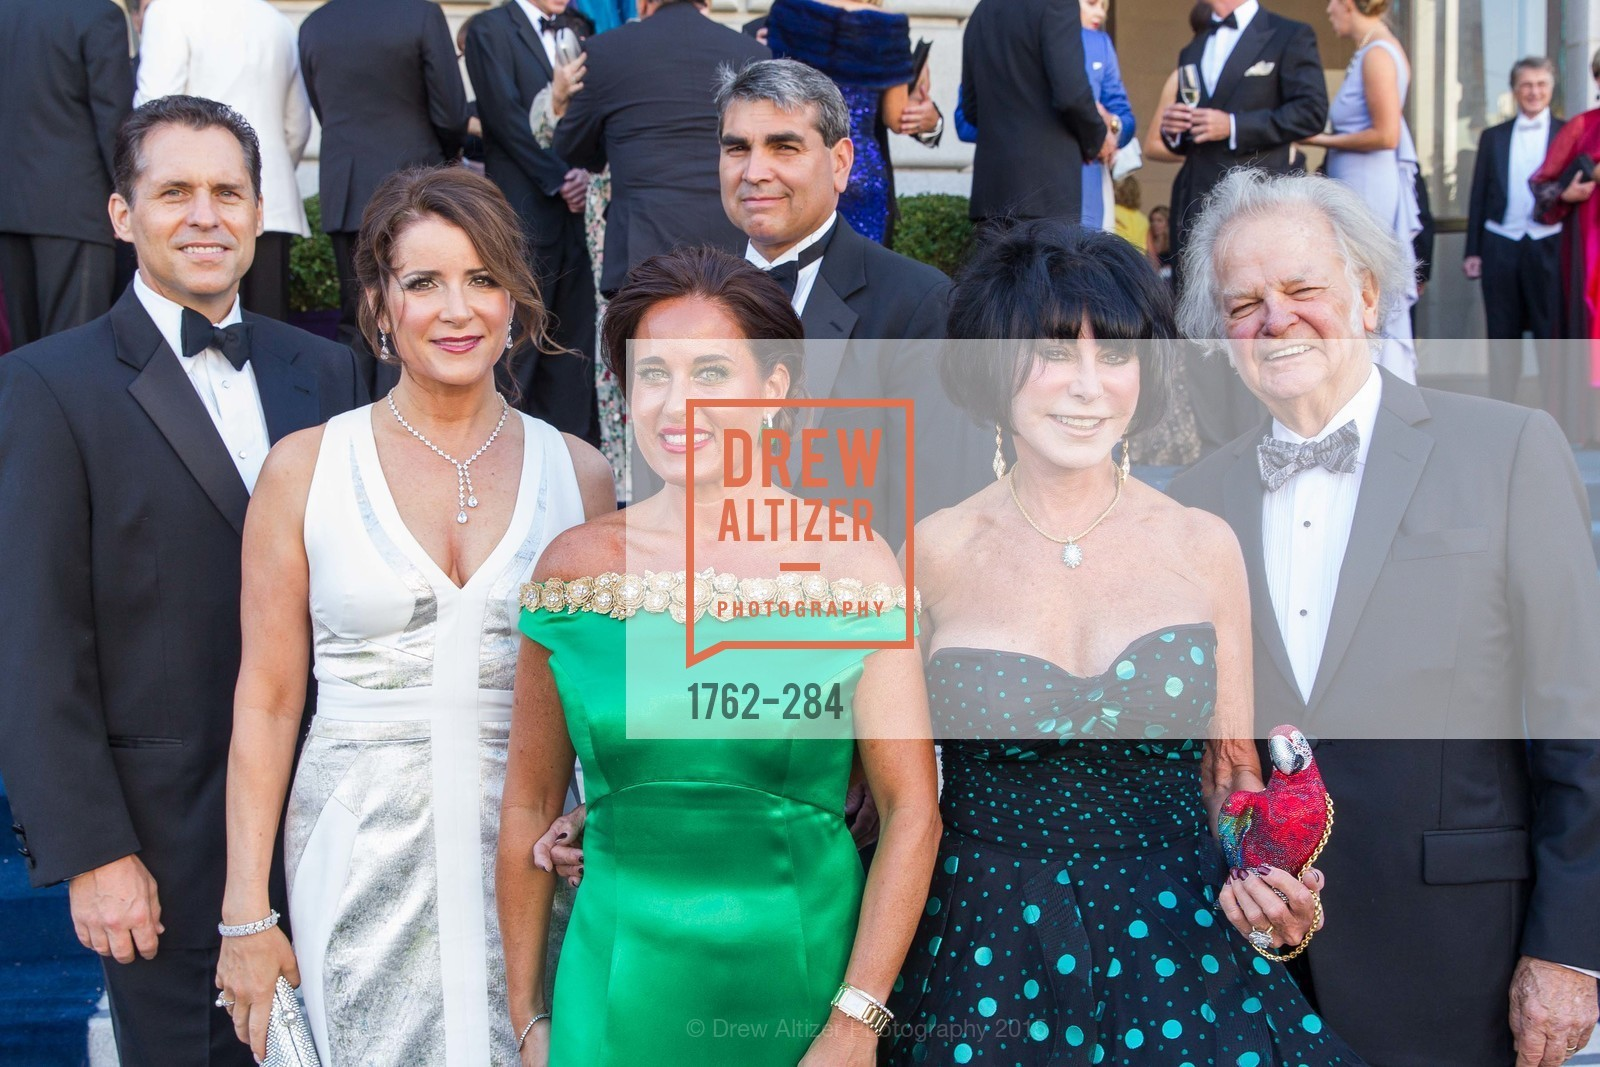 Jim Ritchie, Michelle Ritchie, Natalia Urrutia, Israel Hernandez, Marilyn Cabak, Michael Cabak, Opera Ball 2015: Moonlight & Music, War Memorial Opera House. 301 Van Ness Ave, September 11th, 2015,Drew Altizer, Drew Altizer Photography, full-service agency, private events, San Francisco photographer, photographer california